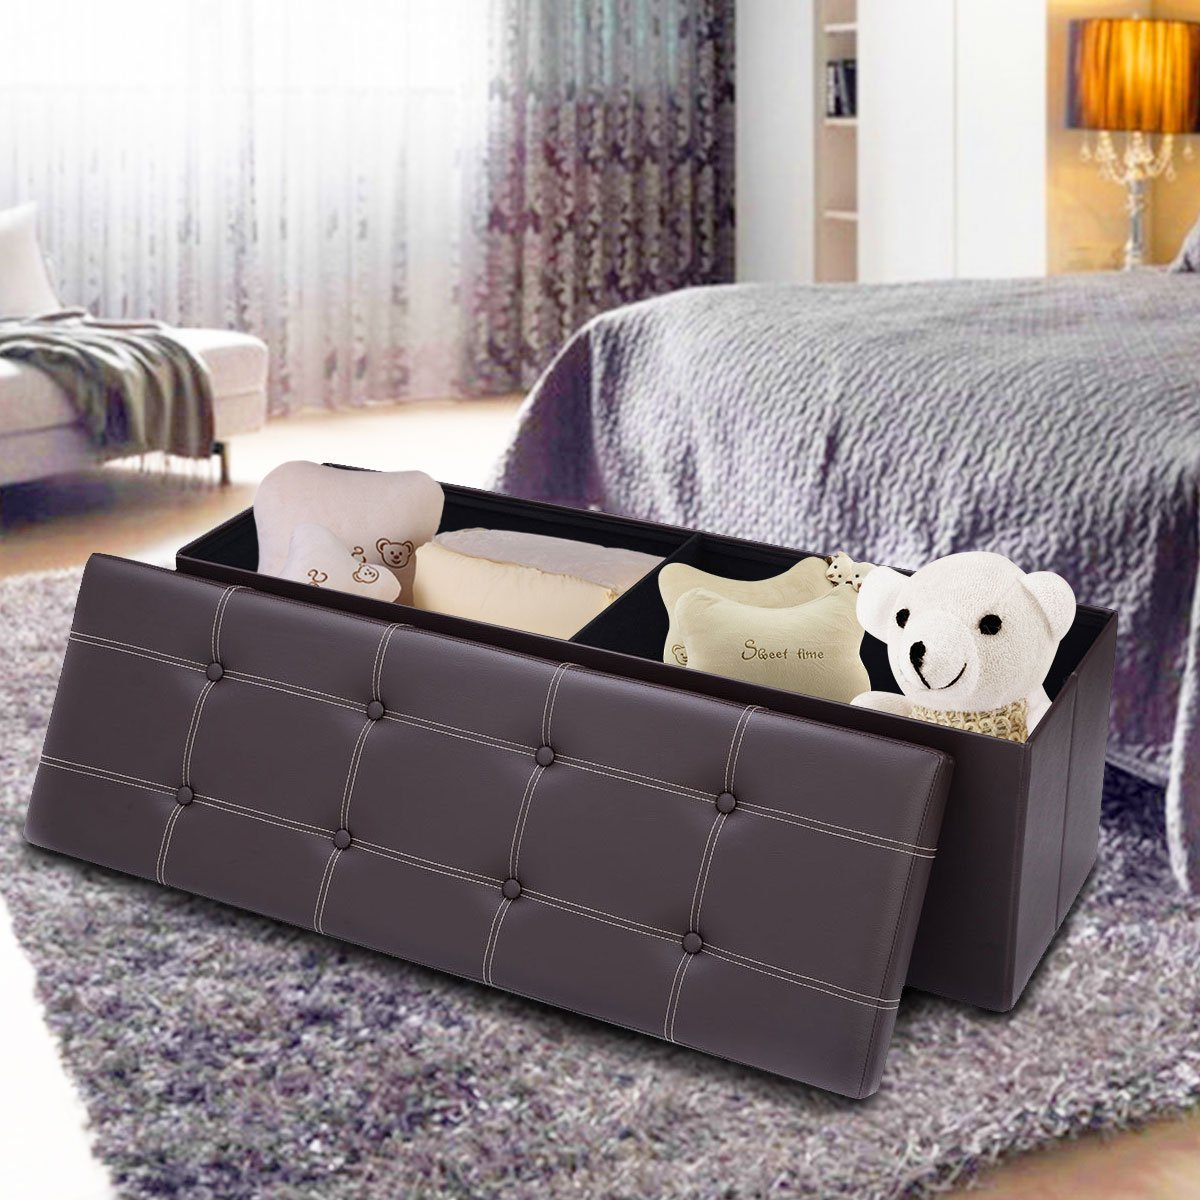 Giantex 45'' Folding Storage Ottoman Bench Tufted Faux Leather Coffee Table Foot Rest Stool Seat Padded Seat Storage Chest, Brown by Giantex